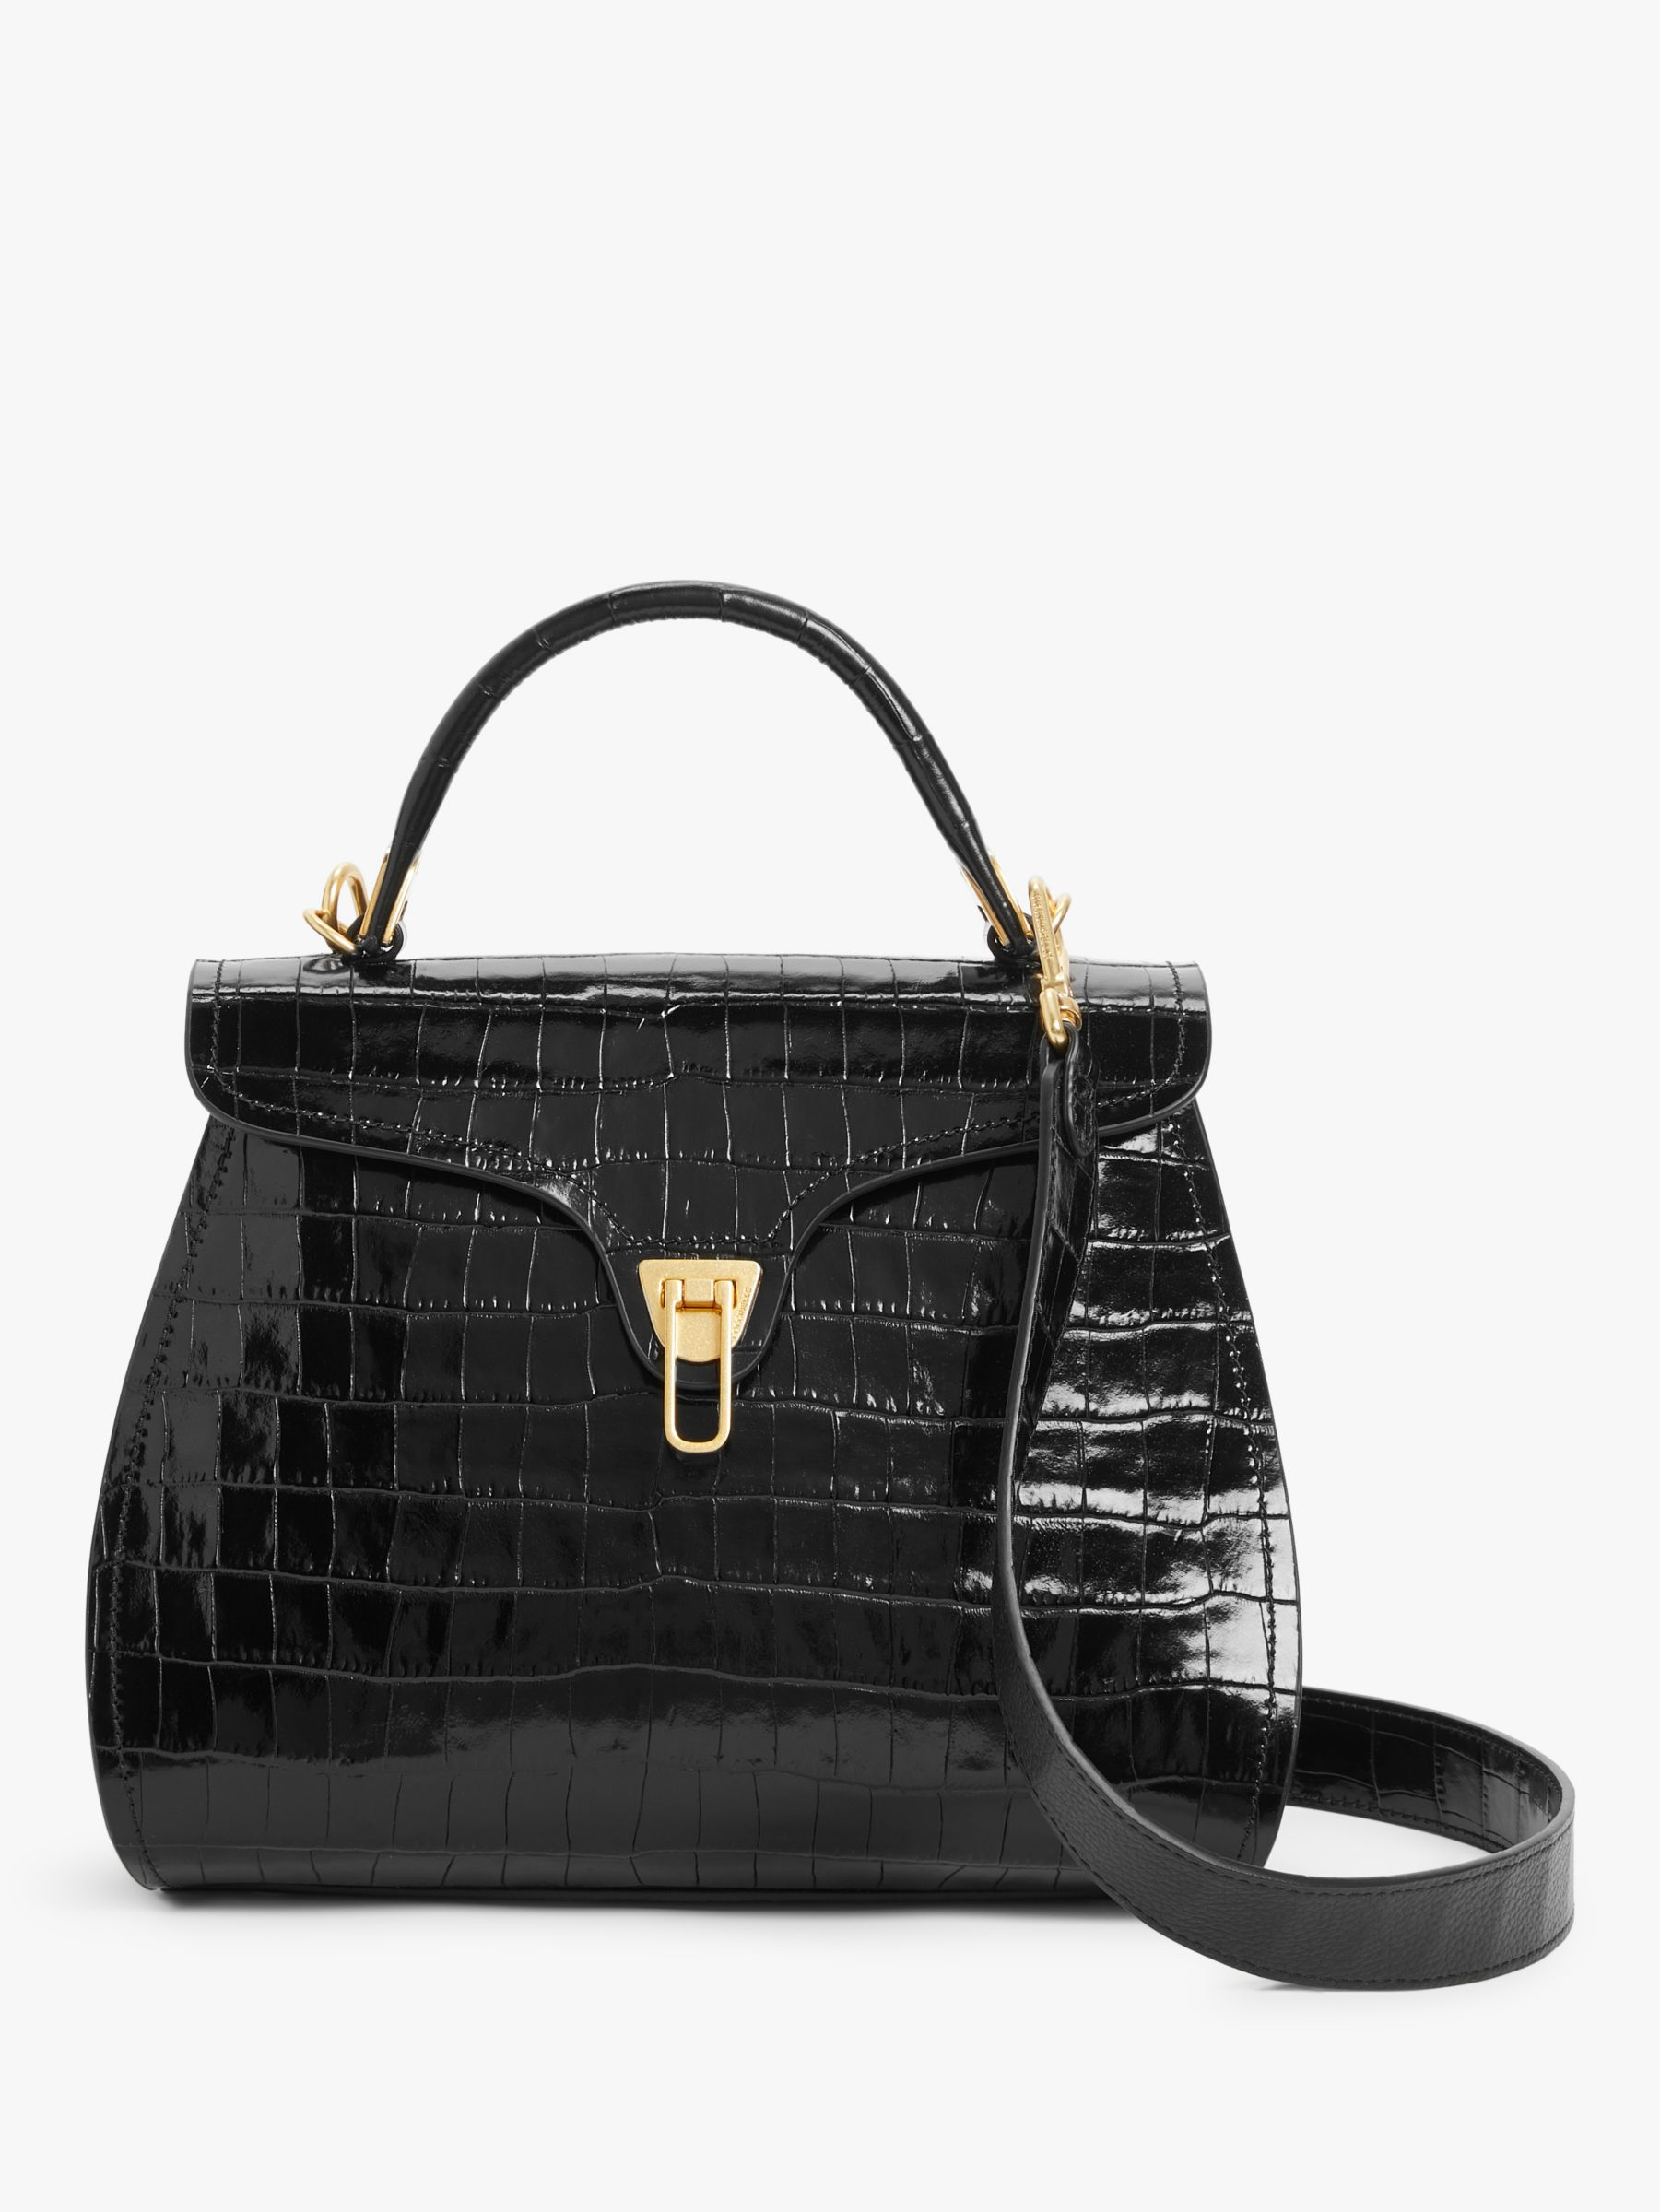 Coccinelle Coccinelle Marvin Croc Effect Leather Shoulder Bag, Black